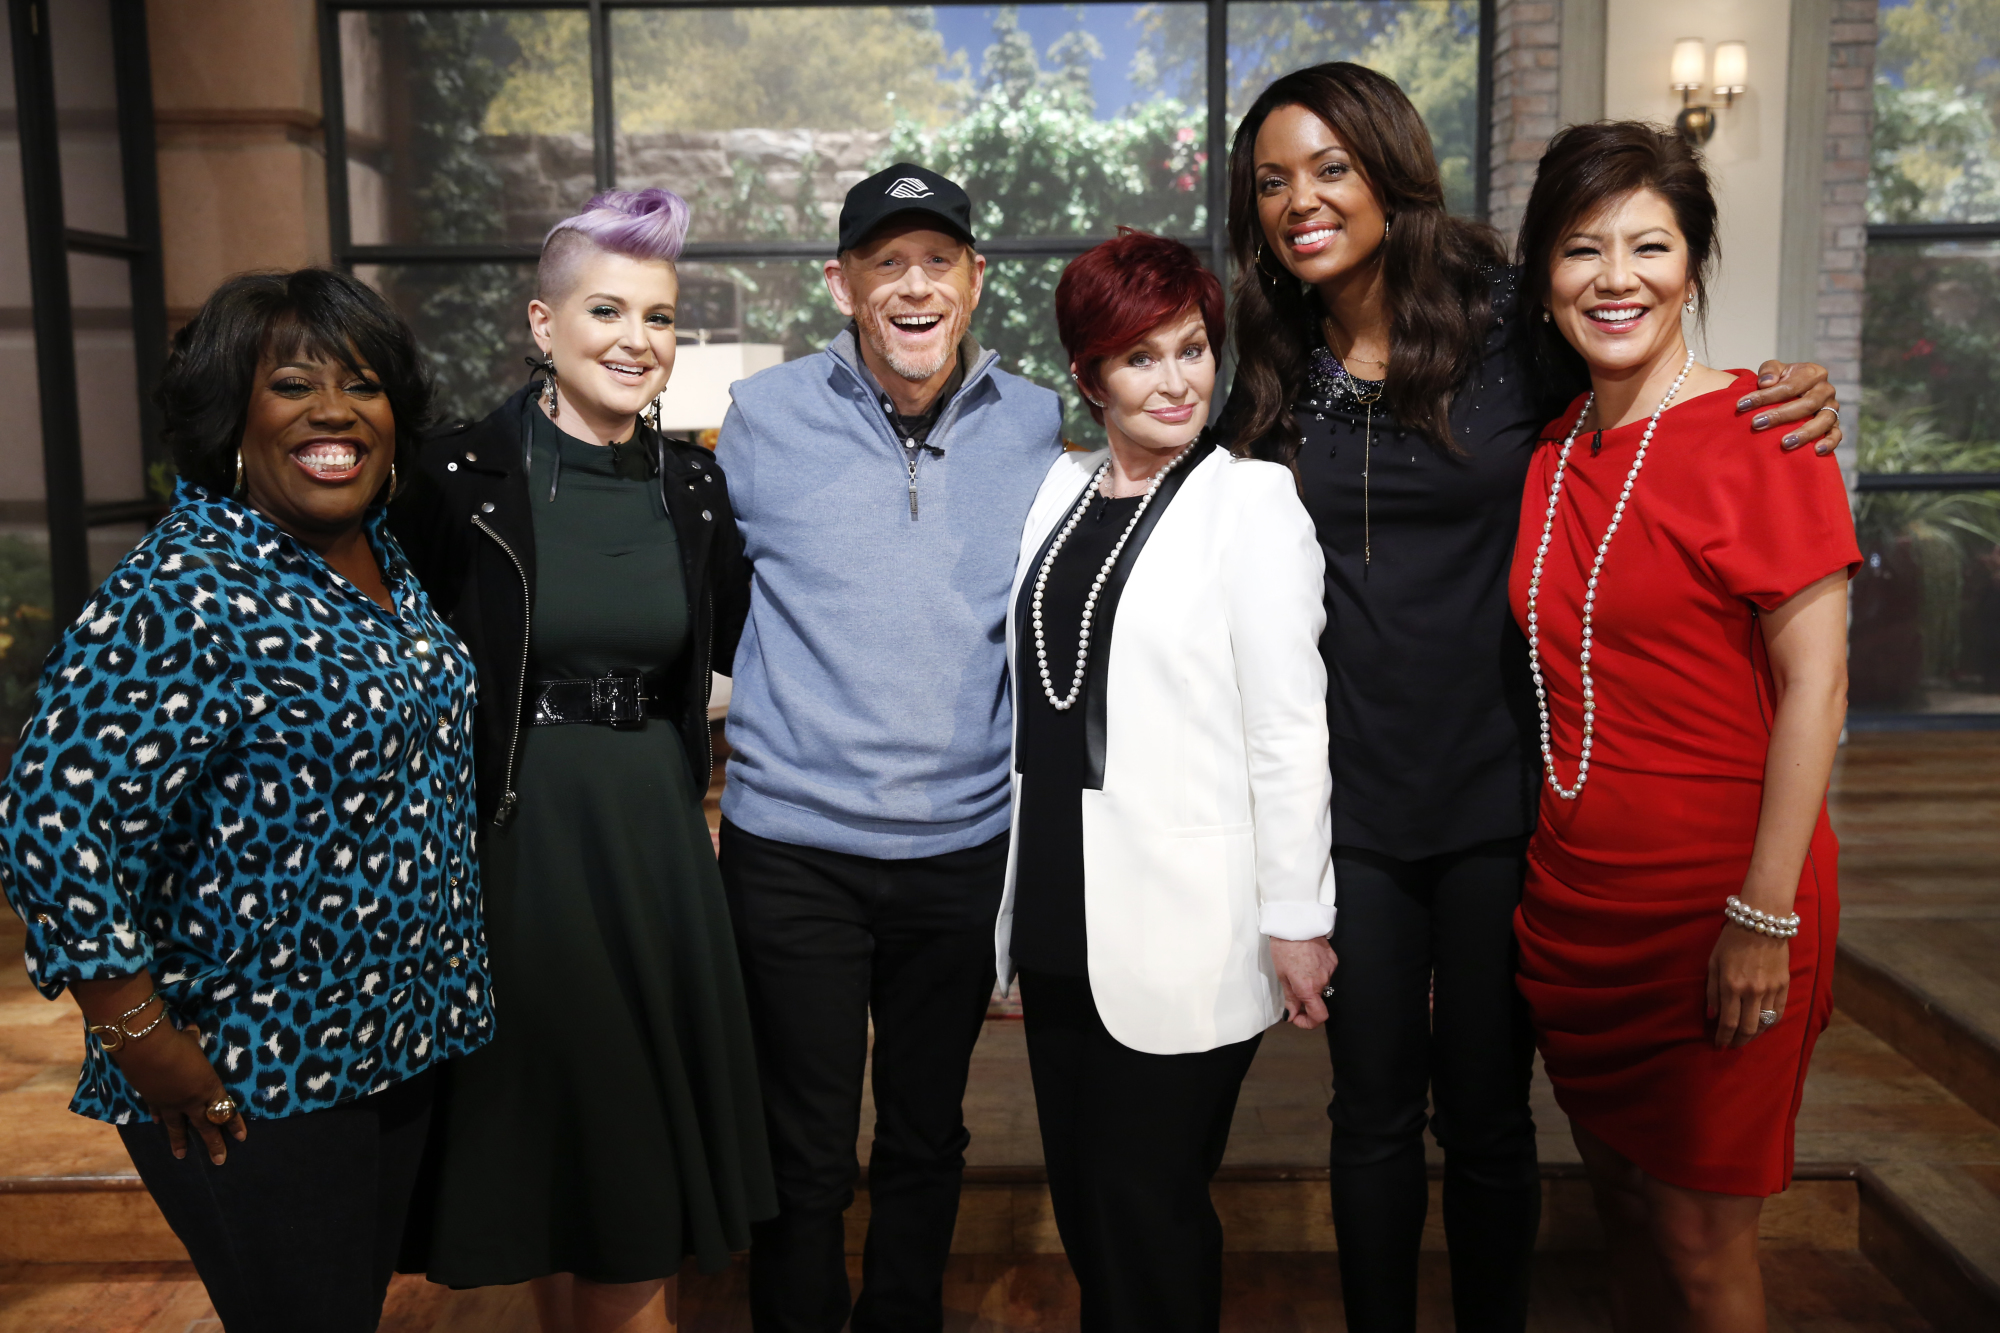 9. The ladies talked with Ron Howard.